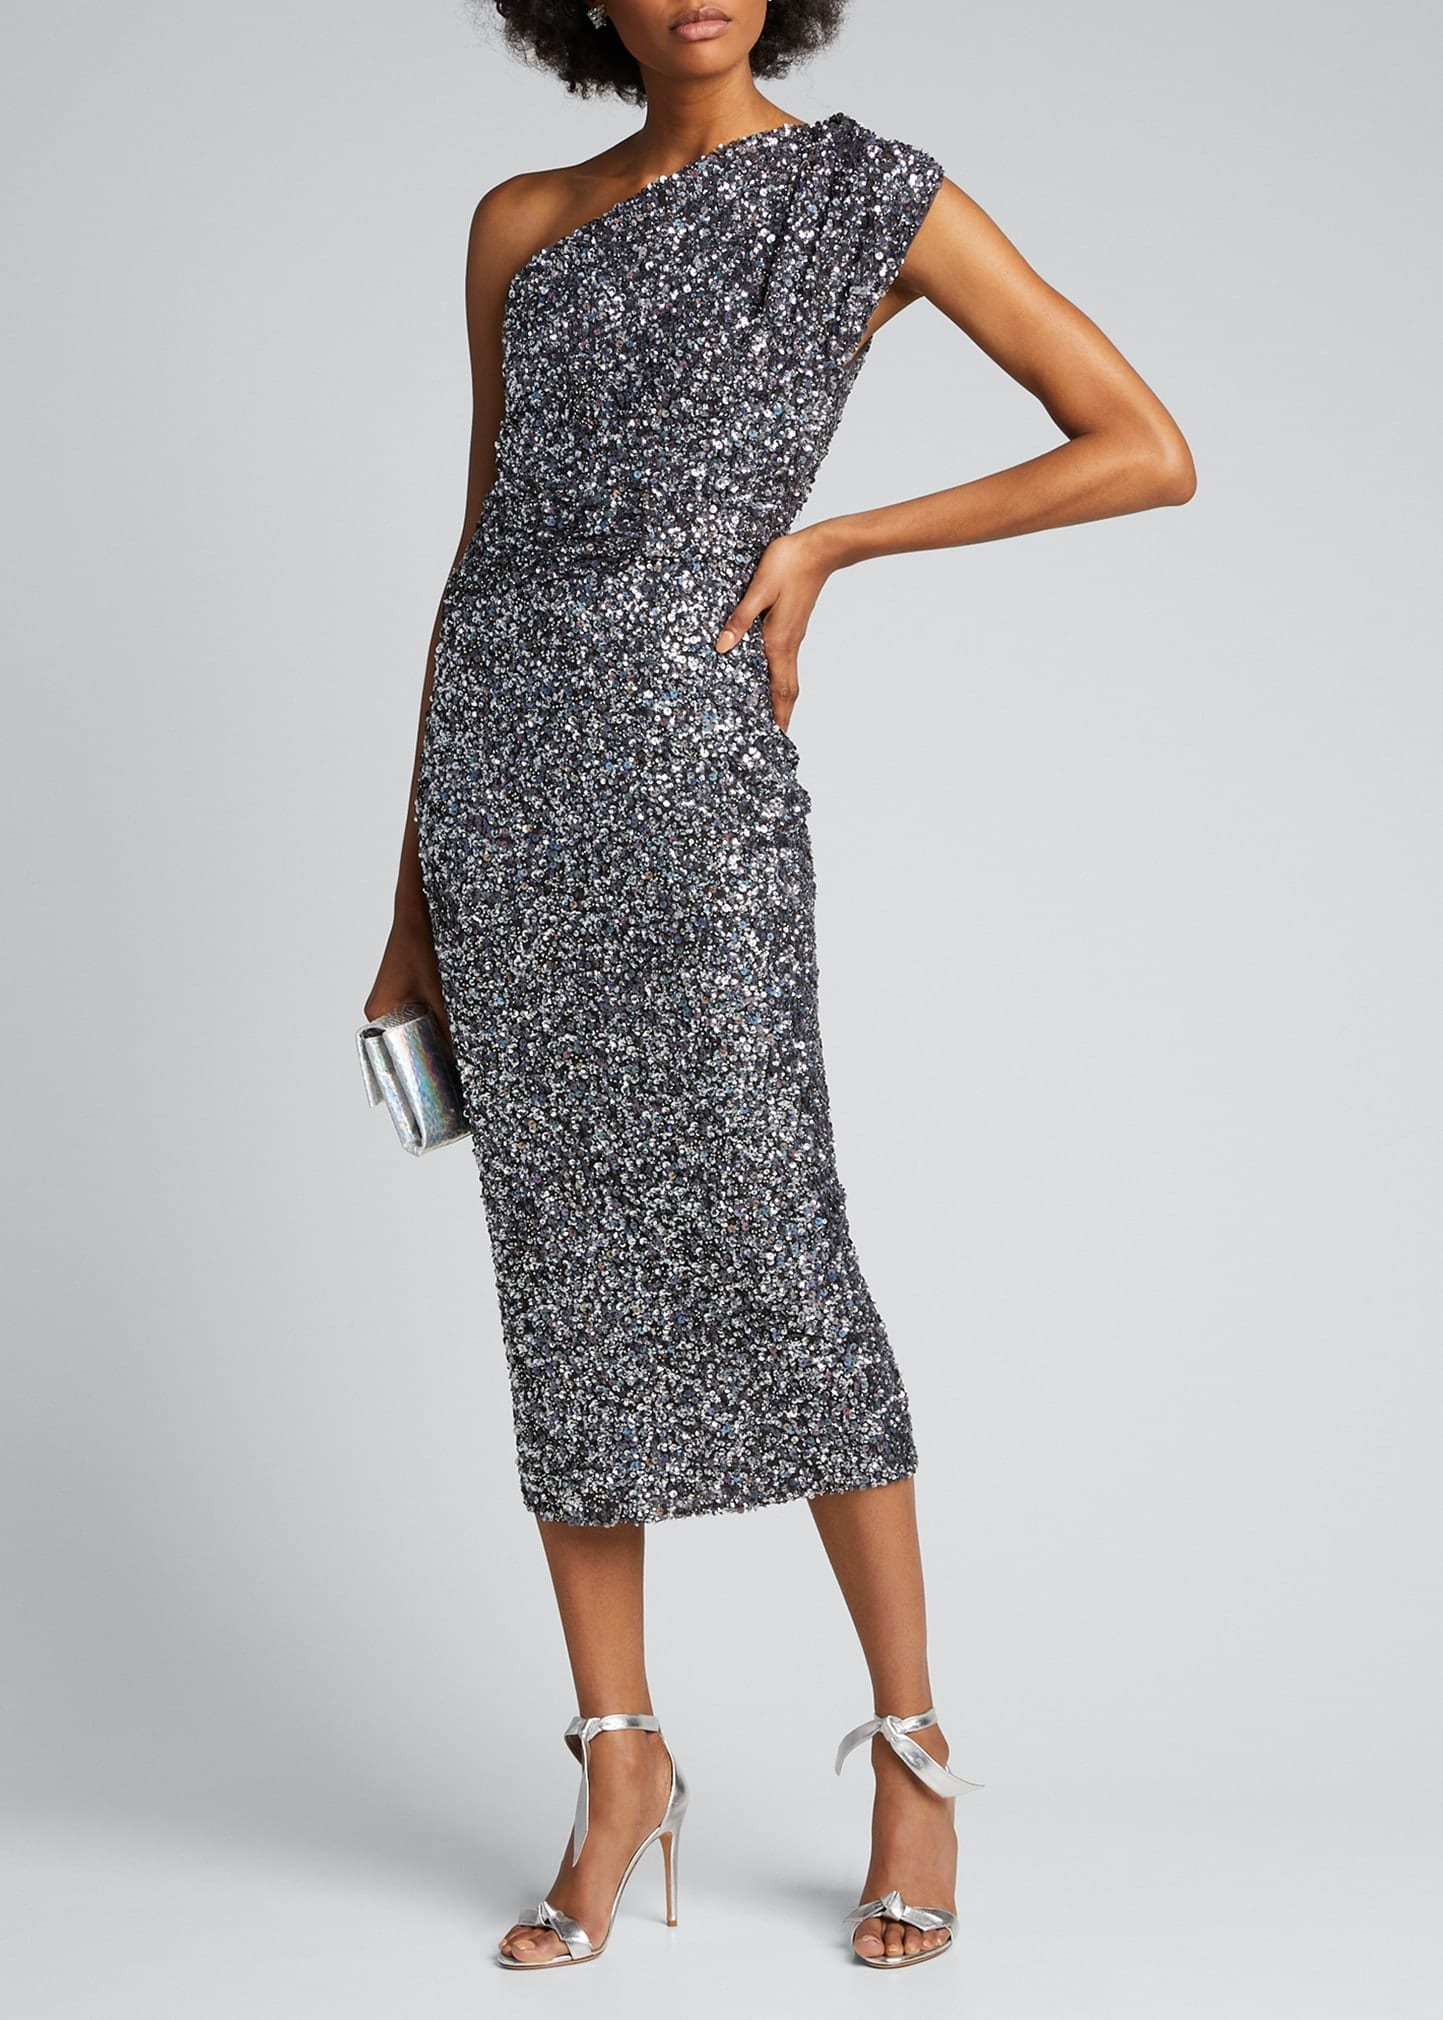 RACHEL GILBERT Embellished One-Shoulder Dress